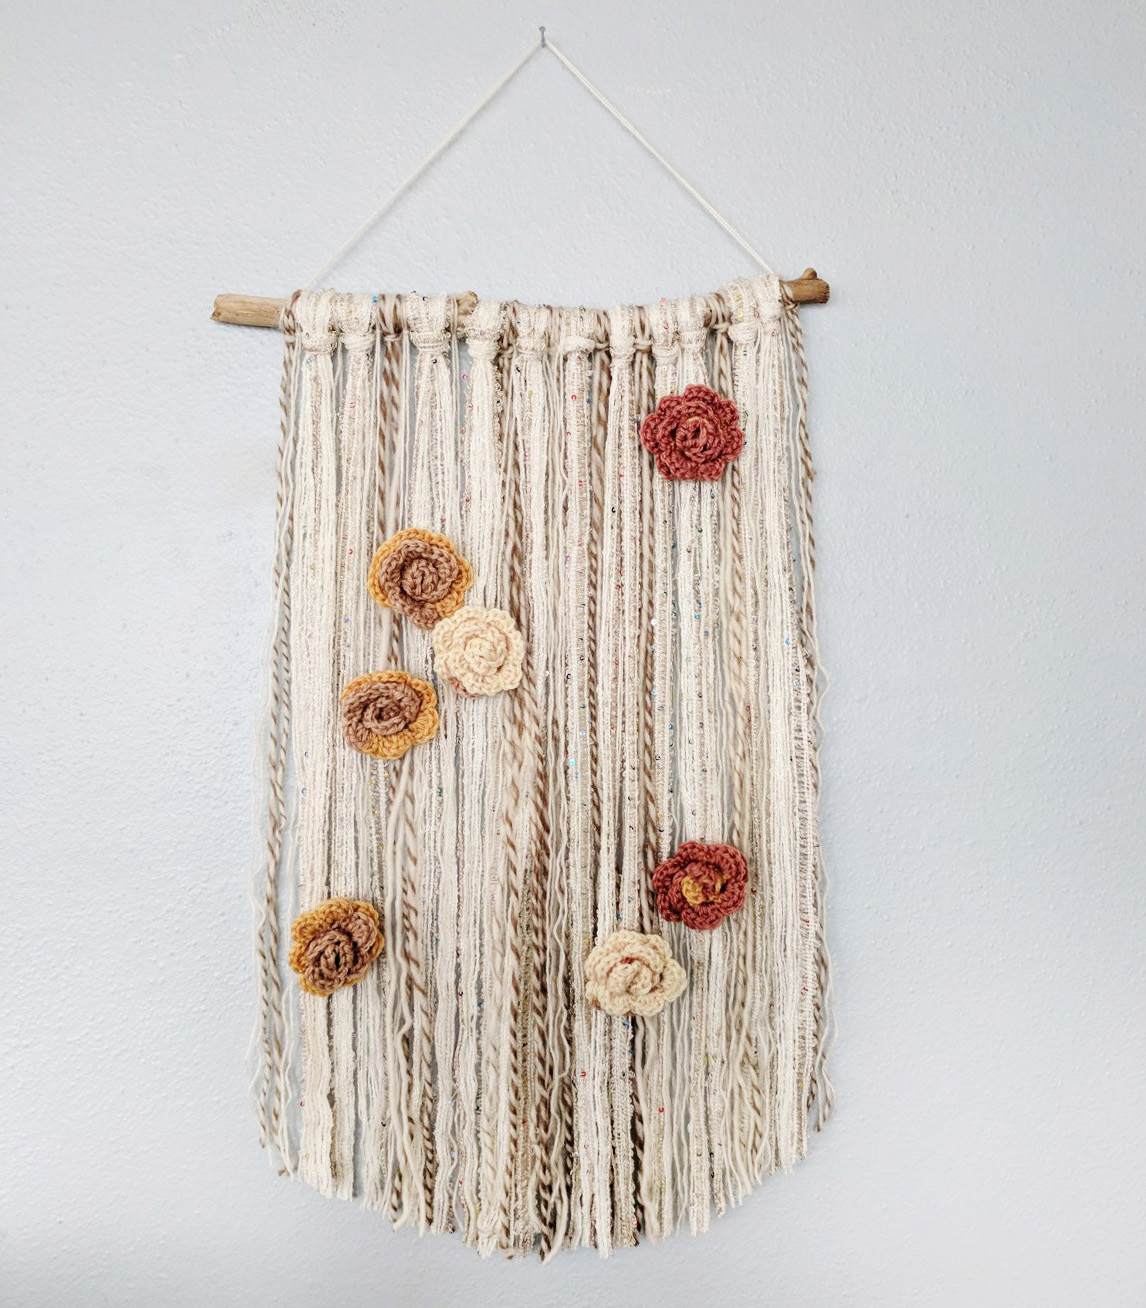 wall-hanging-with-yarn-crocheted-flowers.jpg